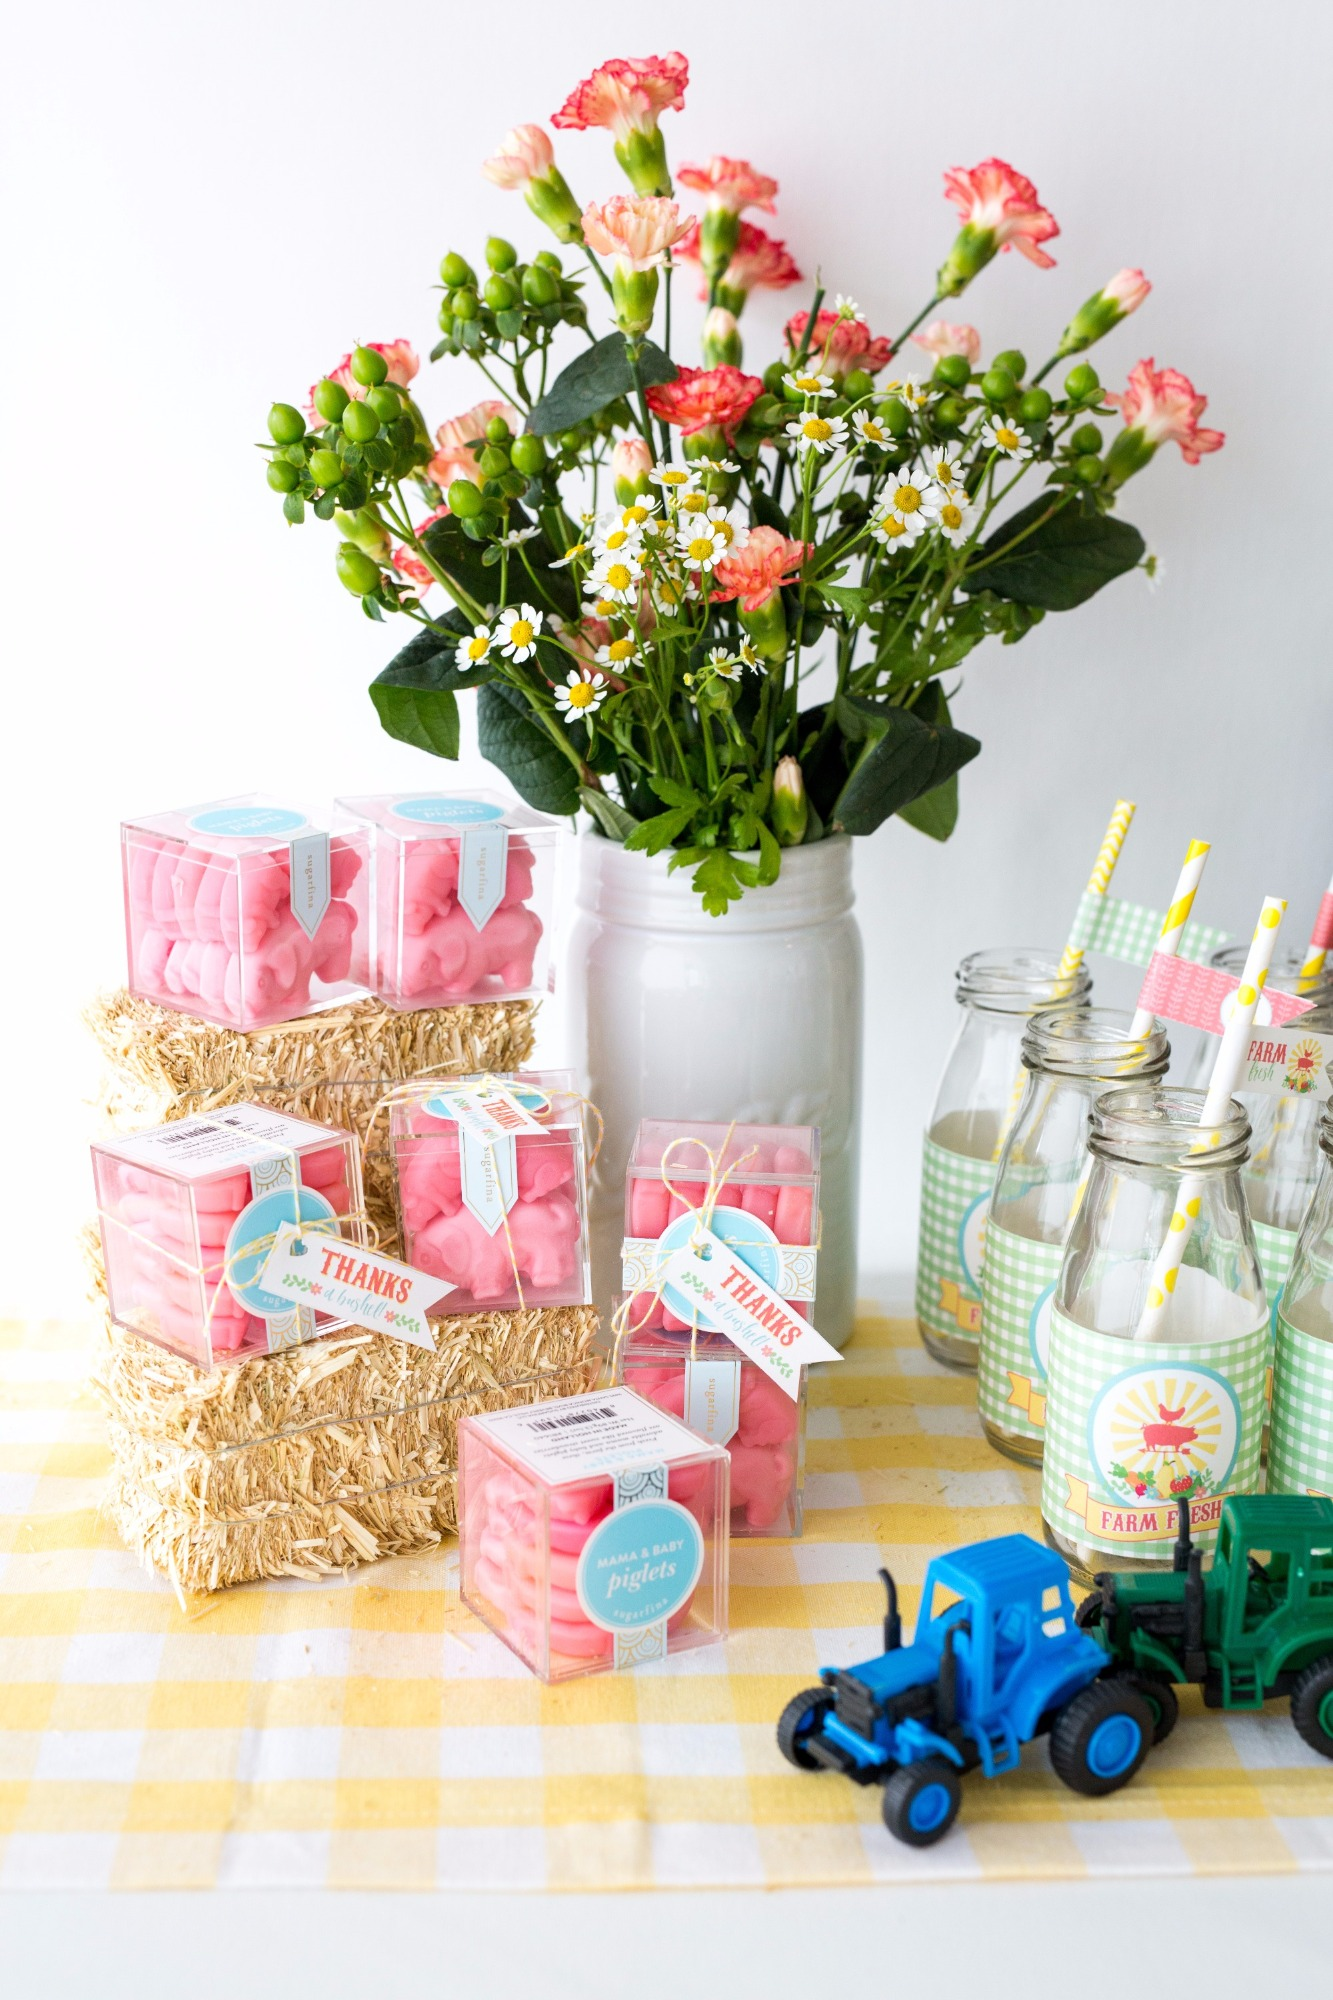 Sugarfina Candy Cubes - Tractors - Milk Bottles - Flowers from Farm Fresh Baby Shower Styled by Black Twine